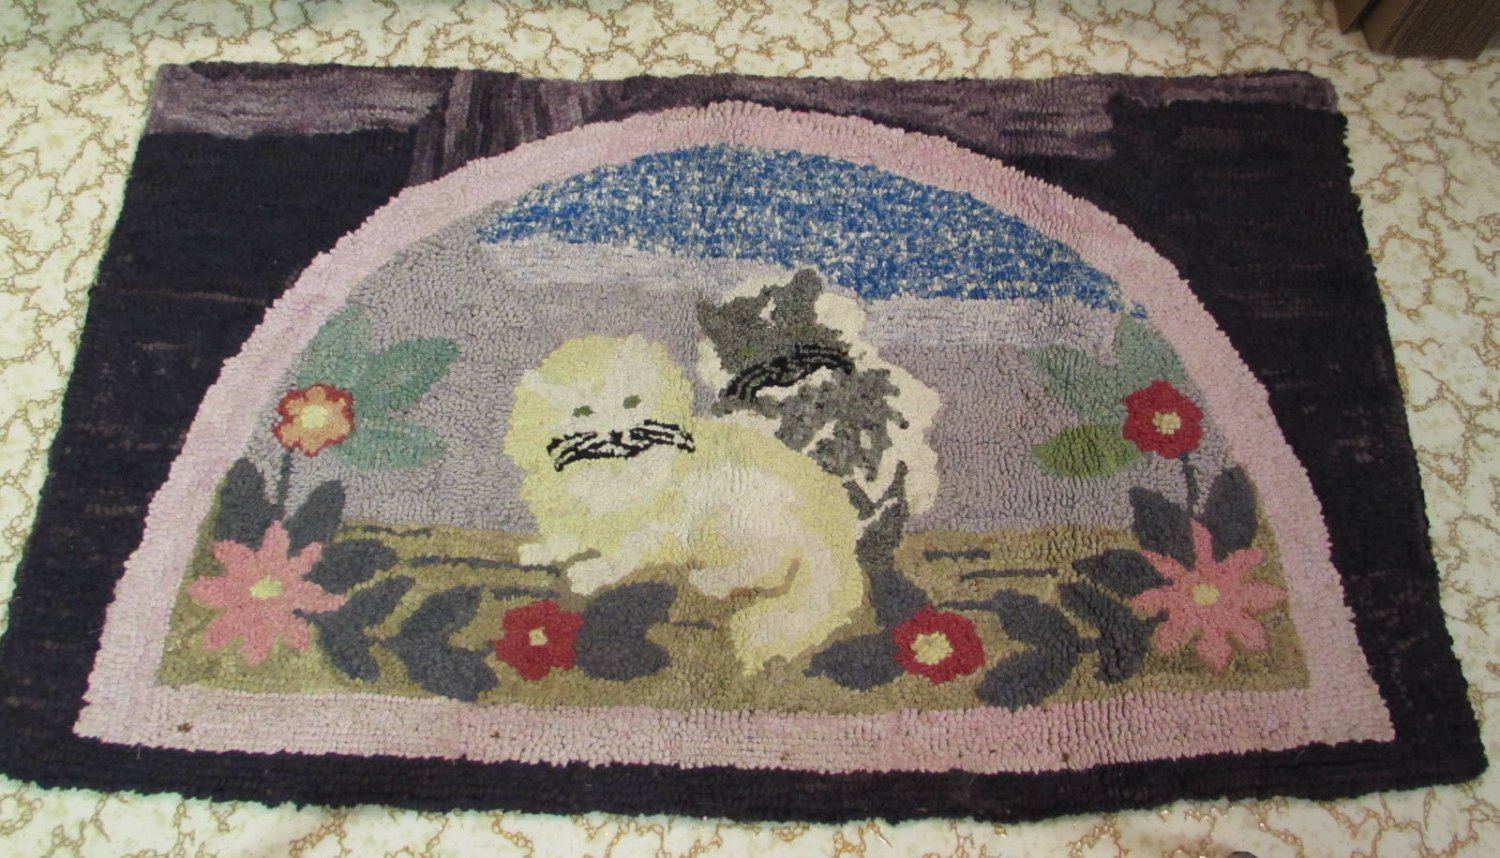 "Antique Hooked Rug Folk Art American Wool Fabrics 21 x 36"" Cats Floral"